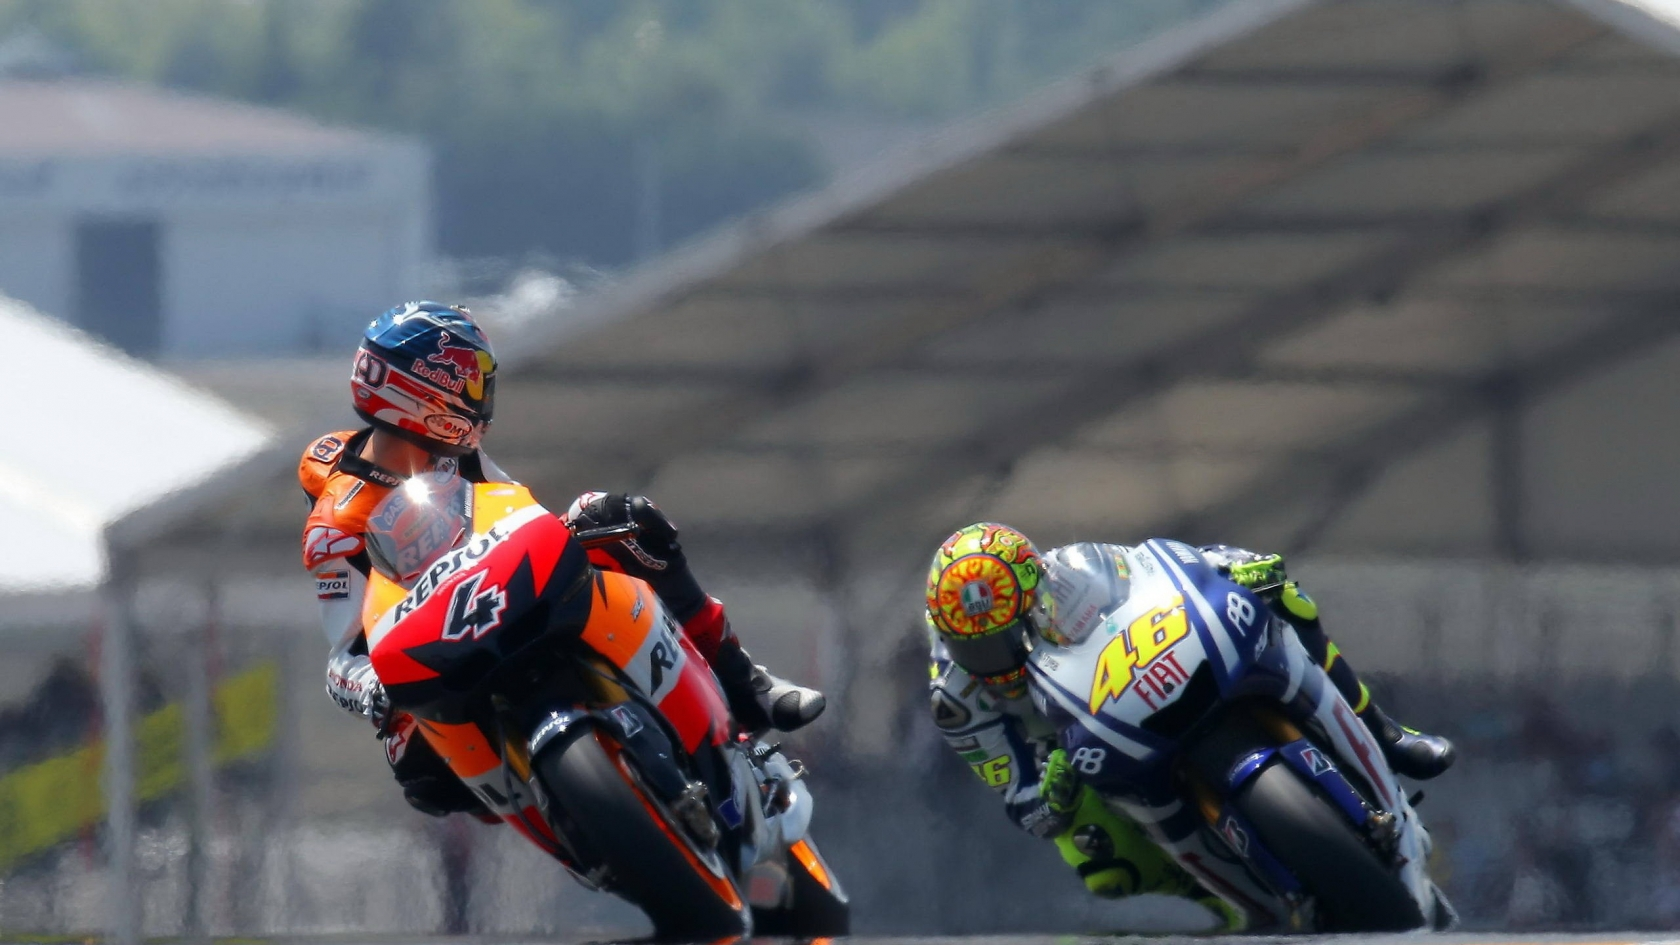 MotoGP Riders for 1680 x 945 HDTV resolution